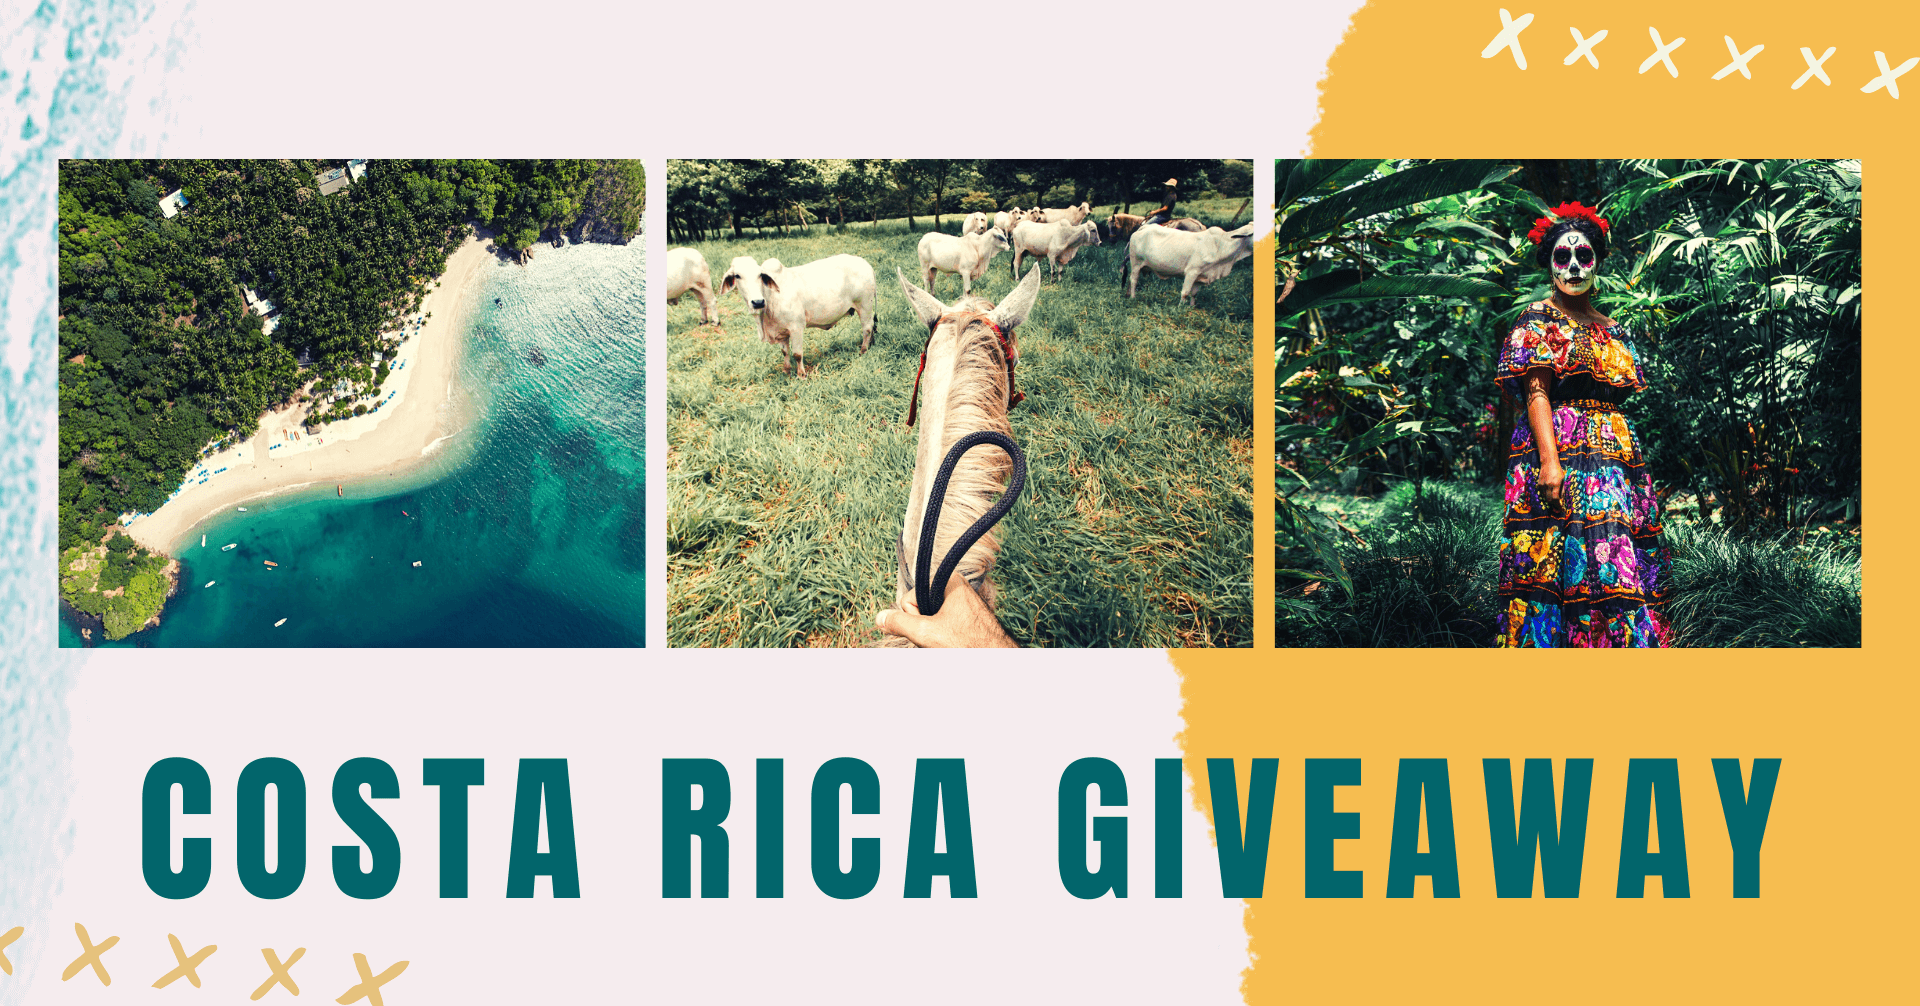 online contests, sweepstakes and giveaways - Win a free trip to Costa Rica!